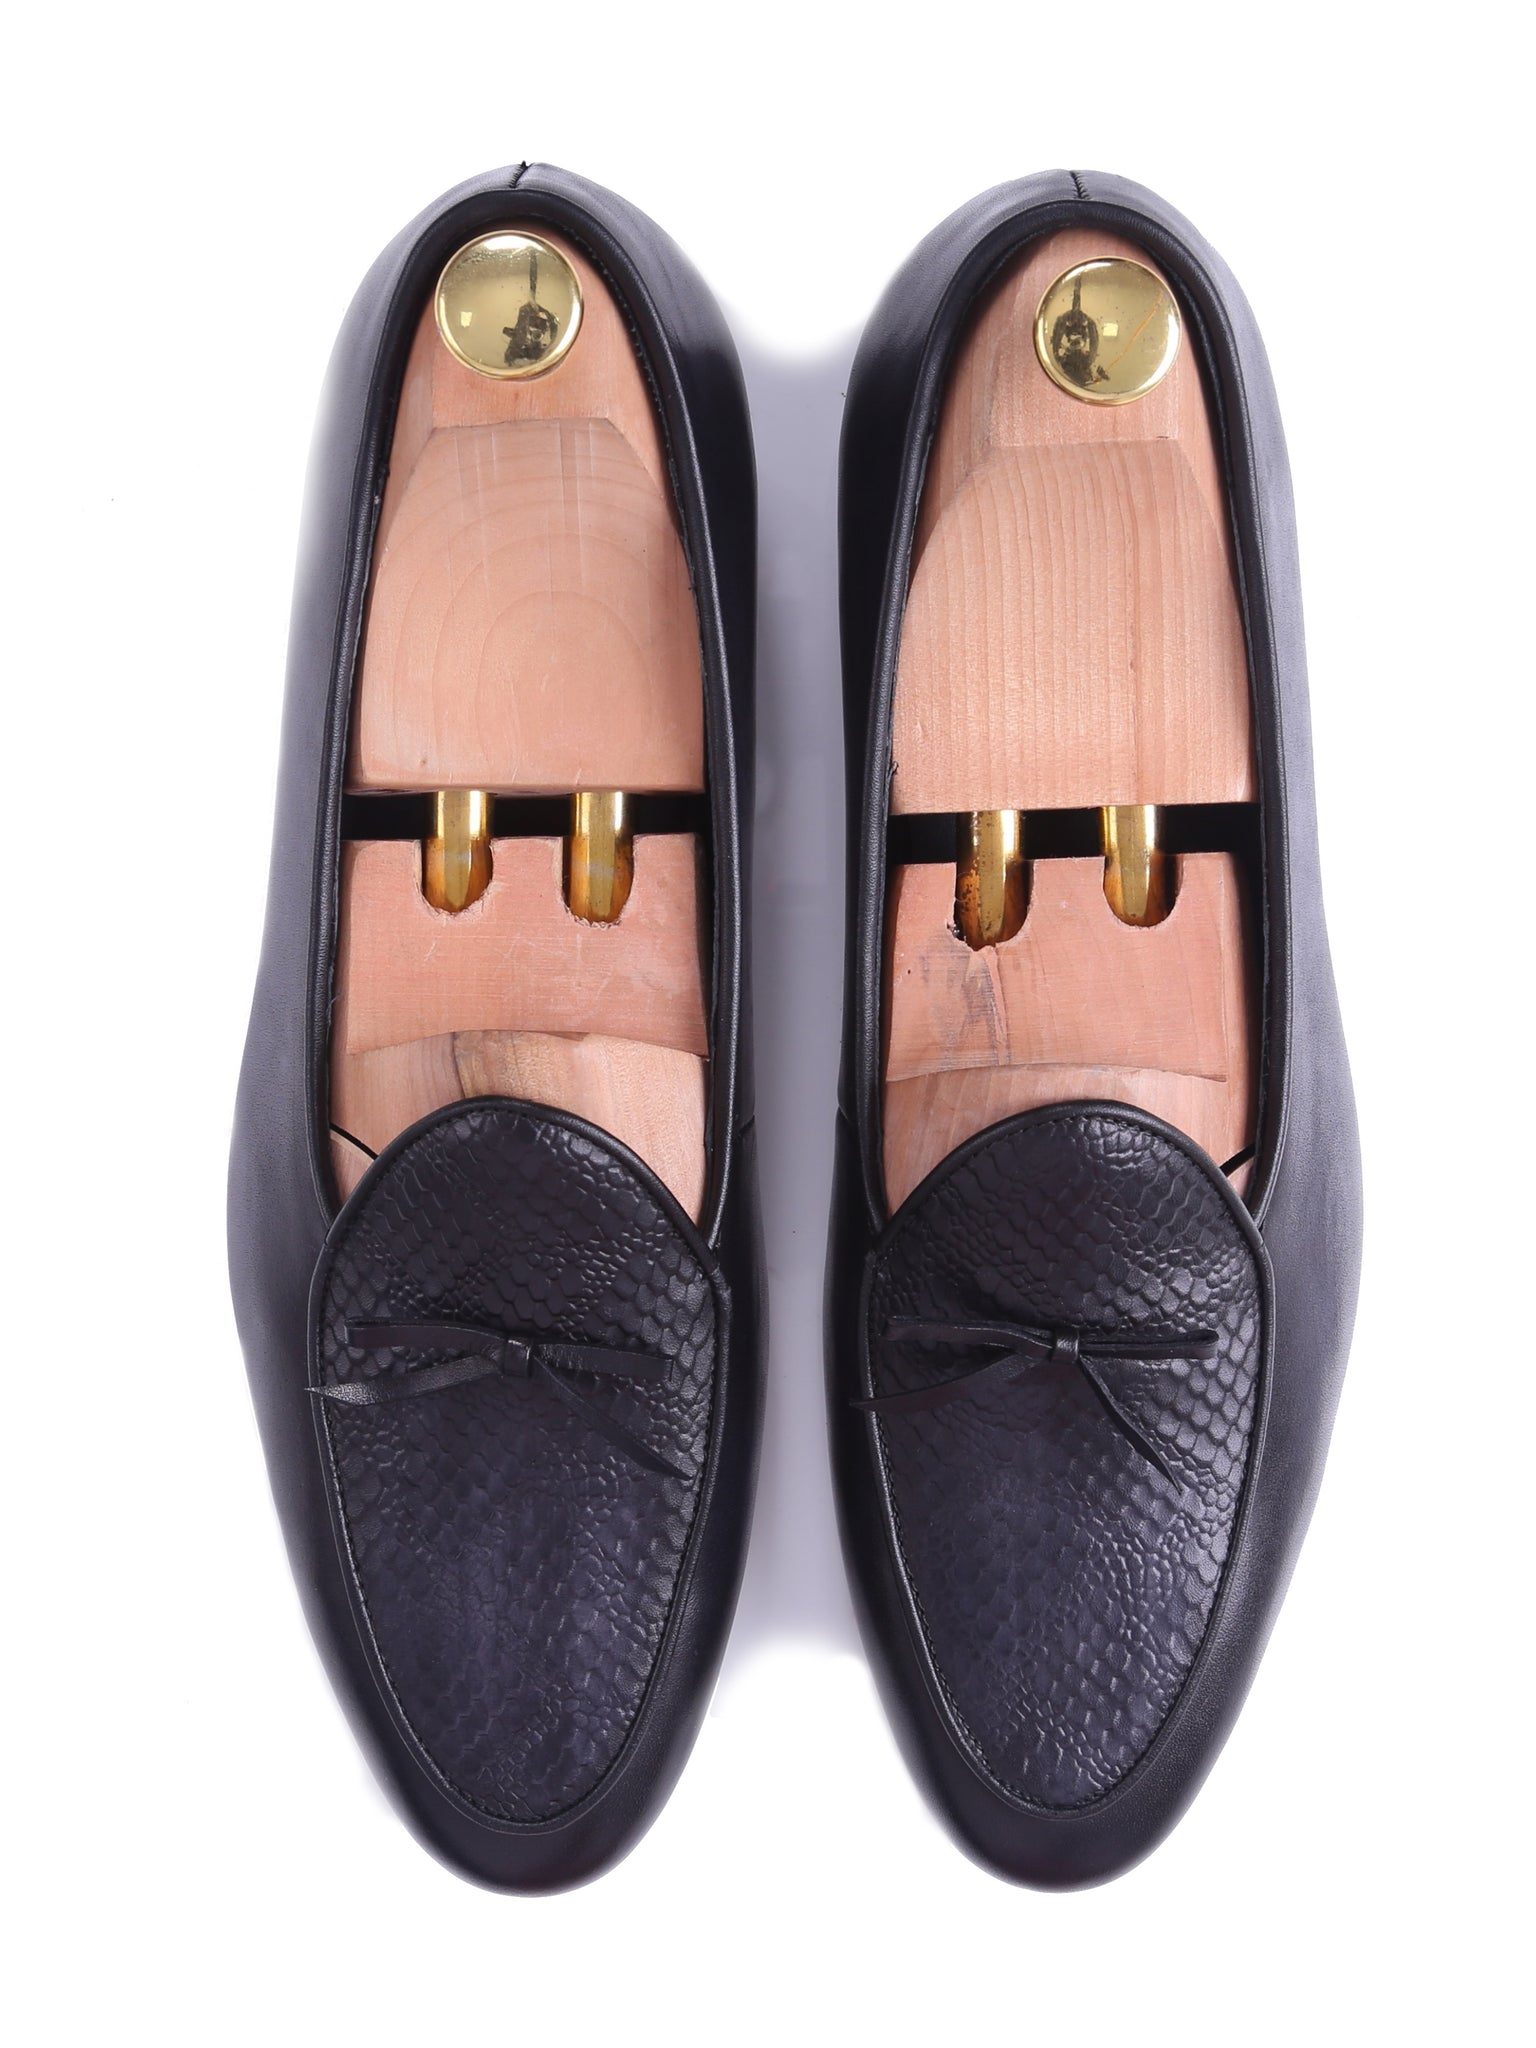 Shoes Belgian Loafer - Dark Brown Snake Skin With Ribbon (Hand Painted Patina)